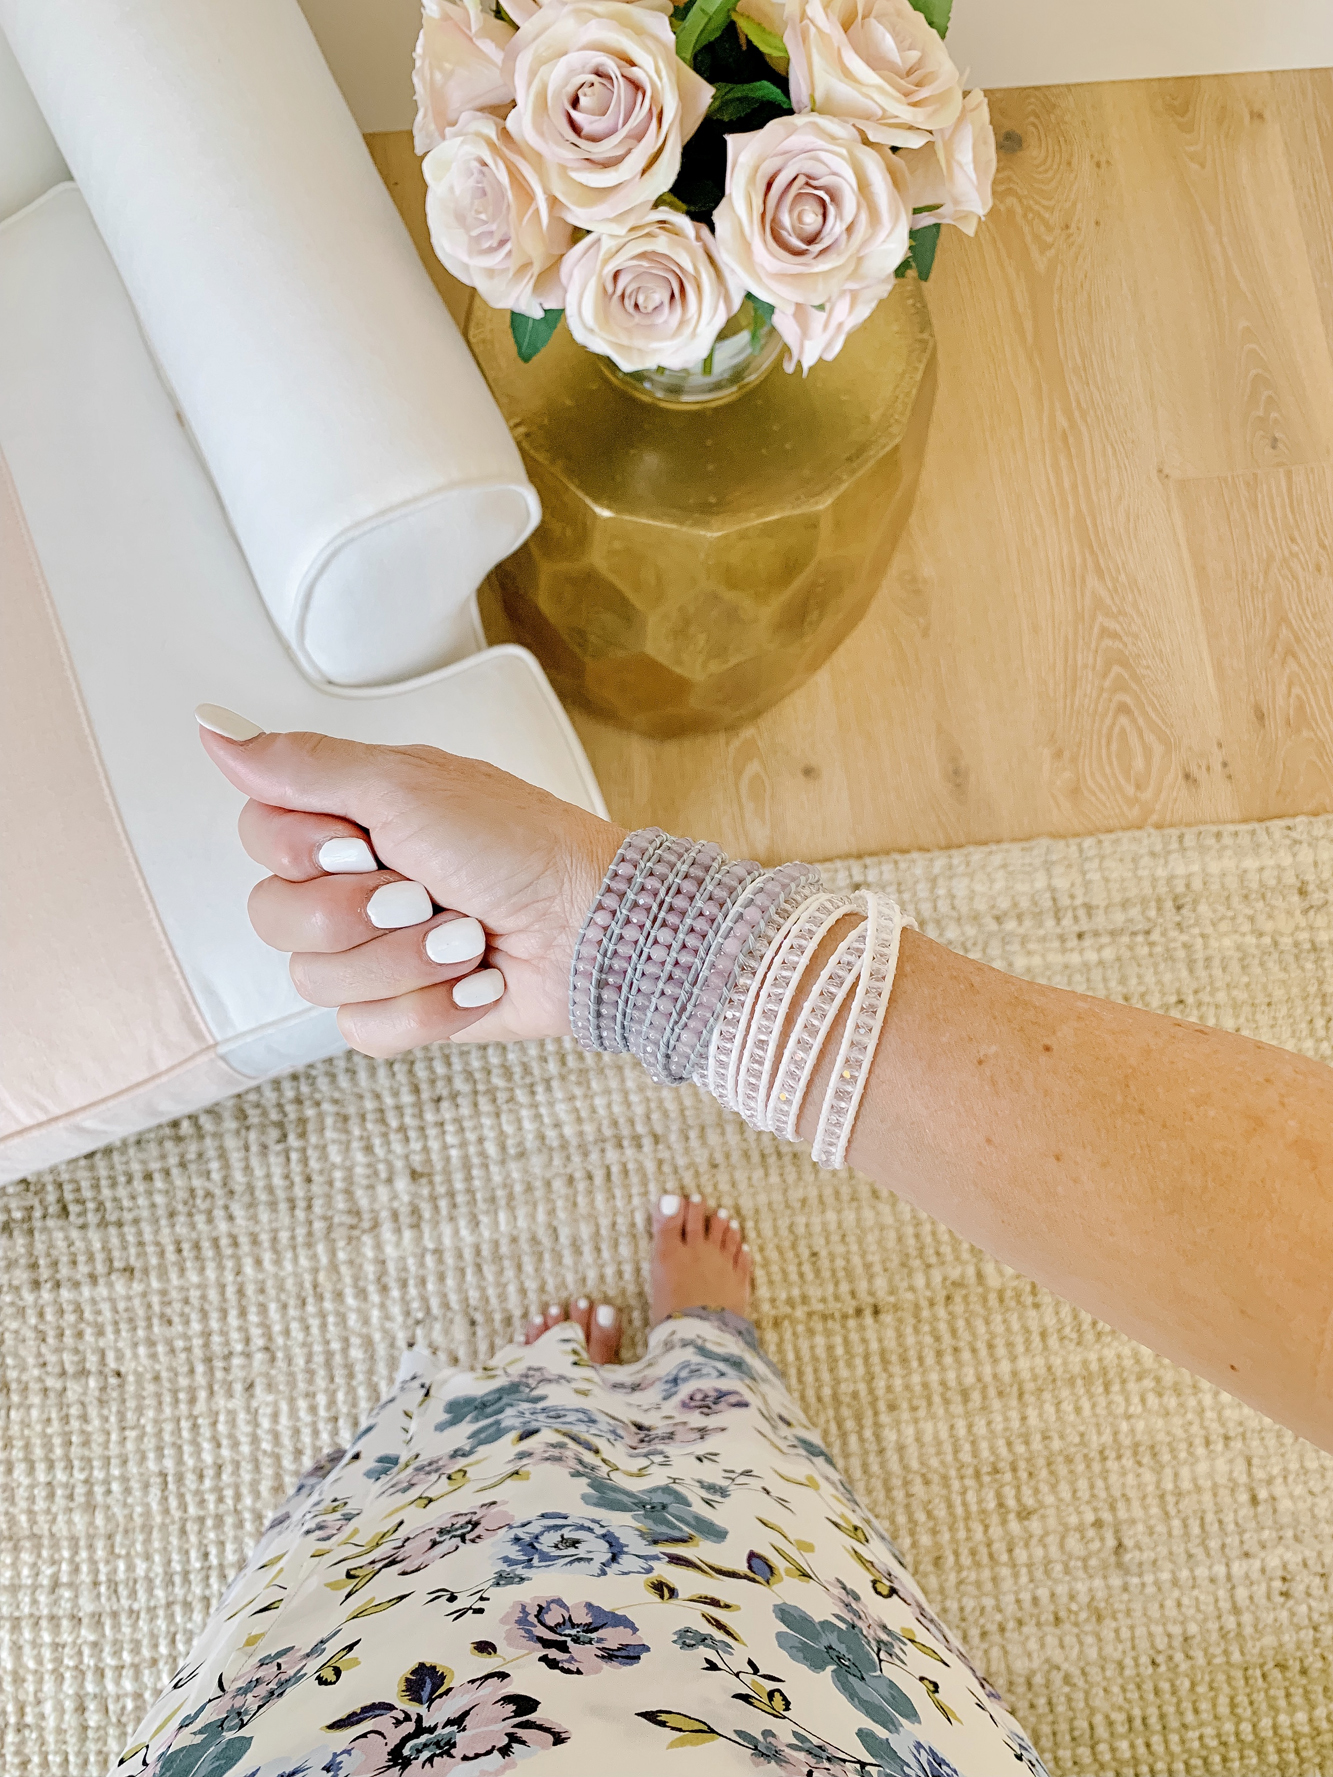 Wrap Bracelet Obsessed - Victoria Emerson Wrap Bracelets & Boho Cuff Bracelet Reviews.. I rounded up my favorite summer accessories!